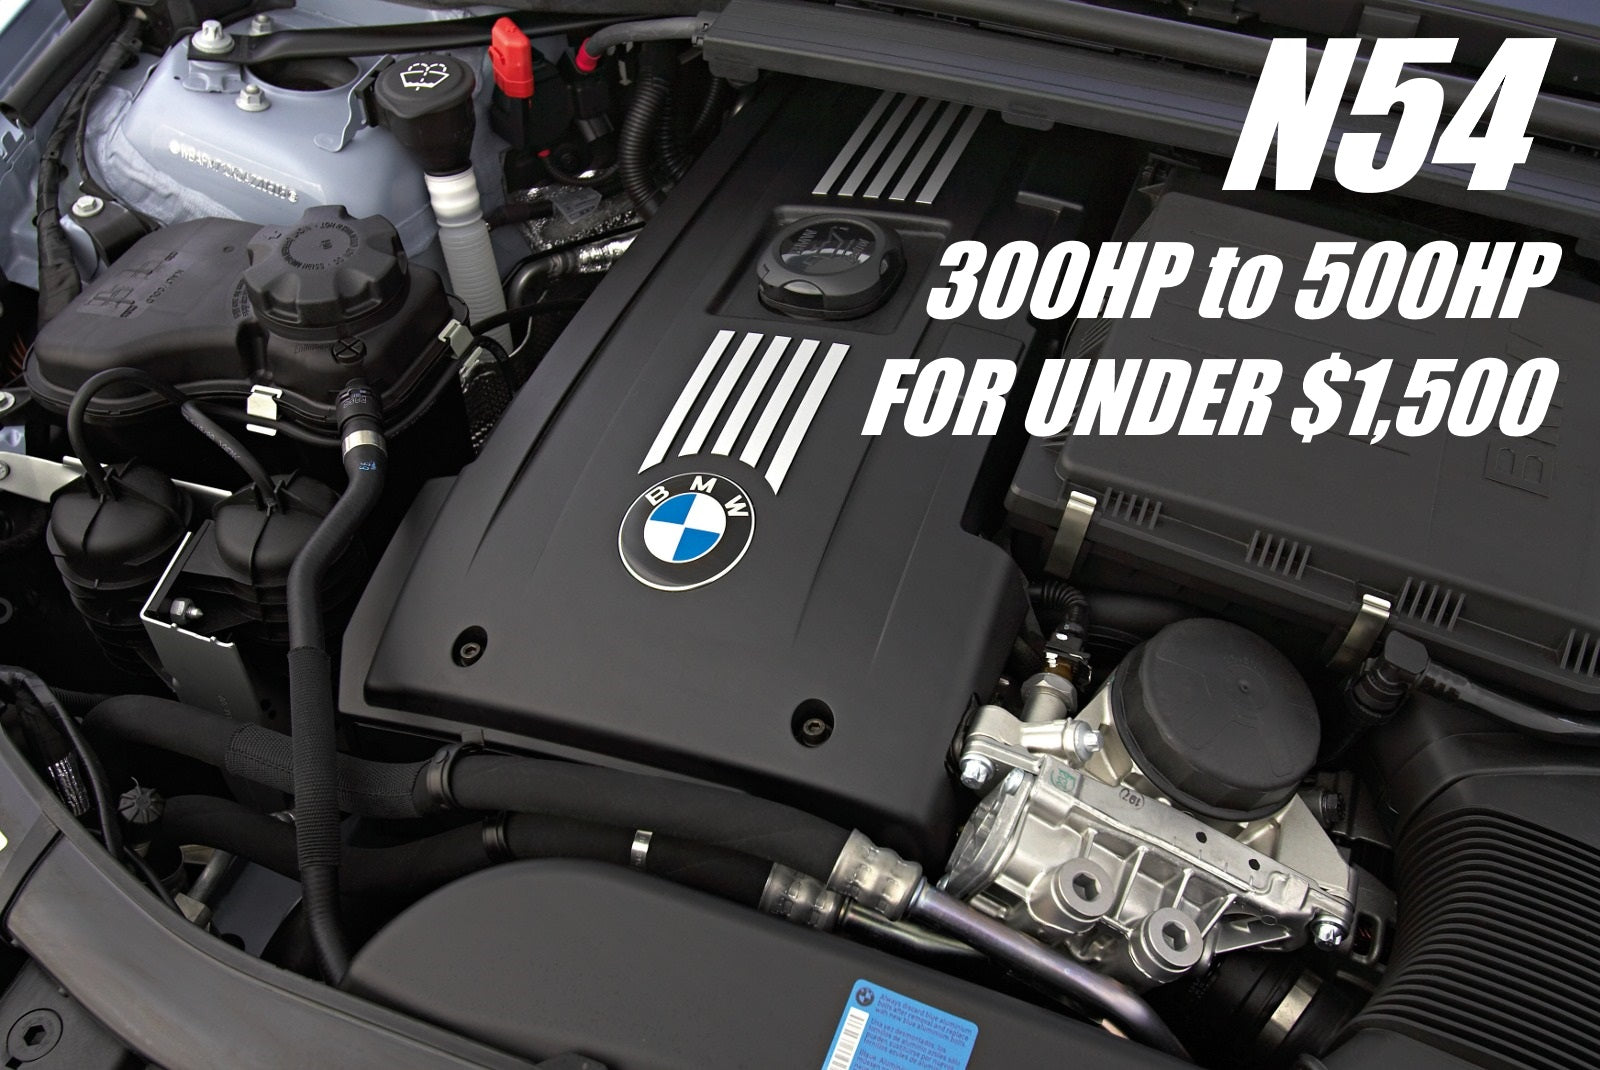 GIVE YOUR N54 BMW 135i or 335i 500HP FOR UNDER $1,500